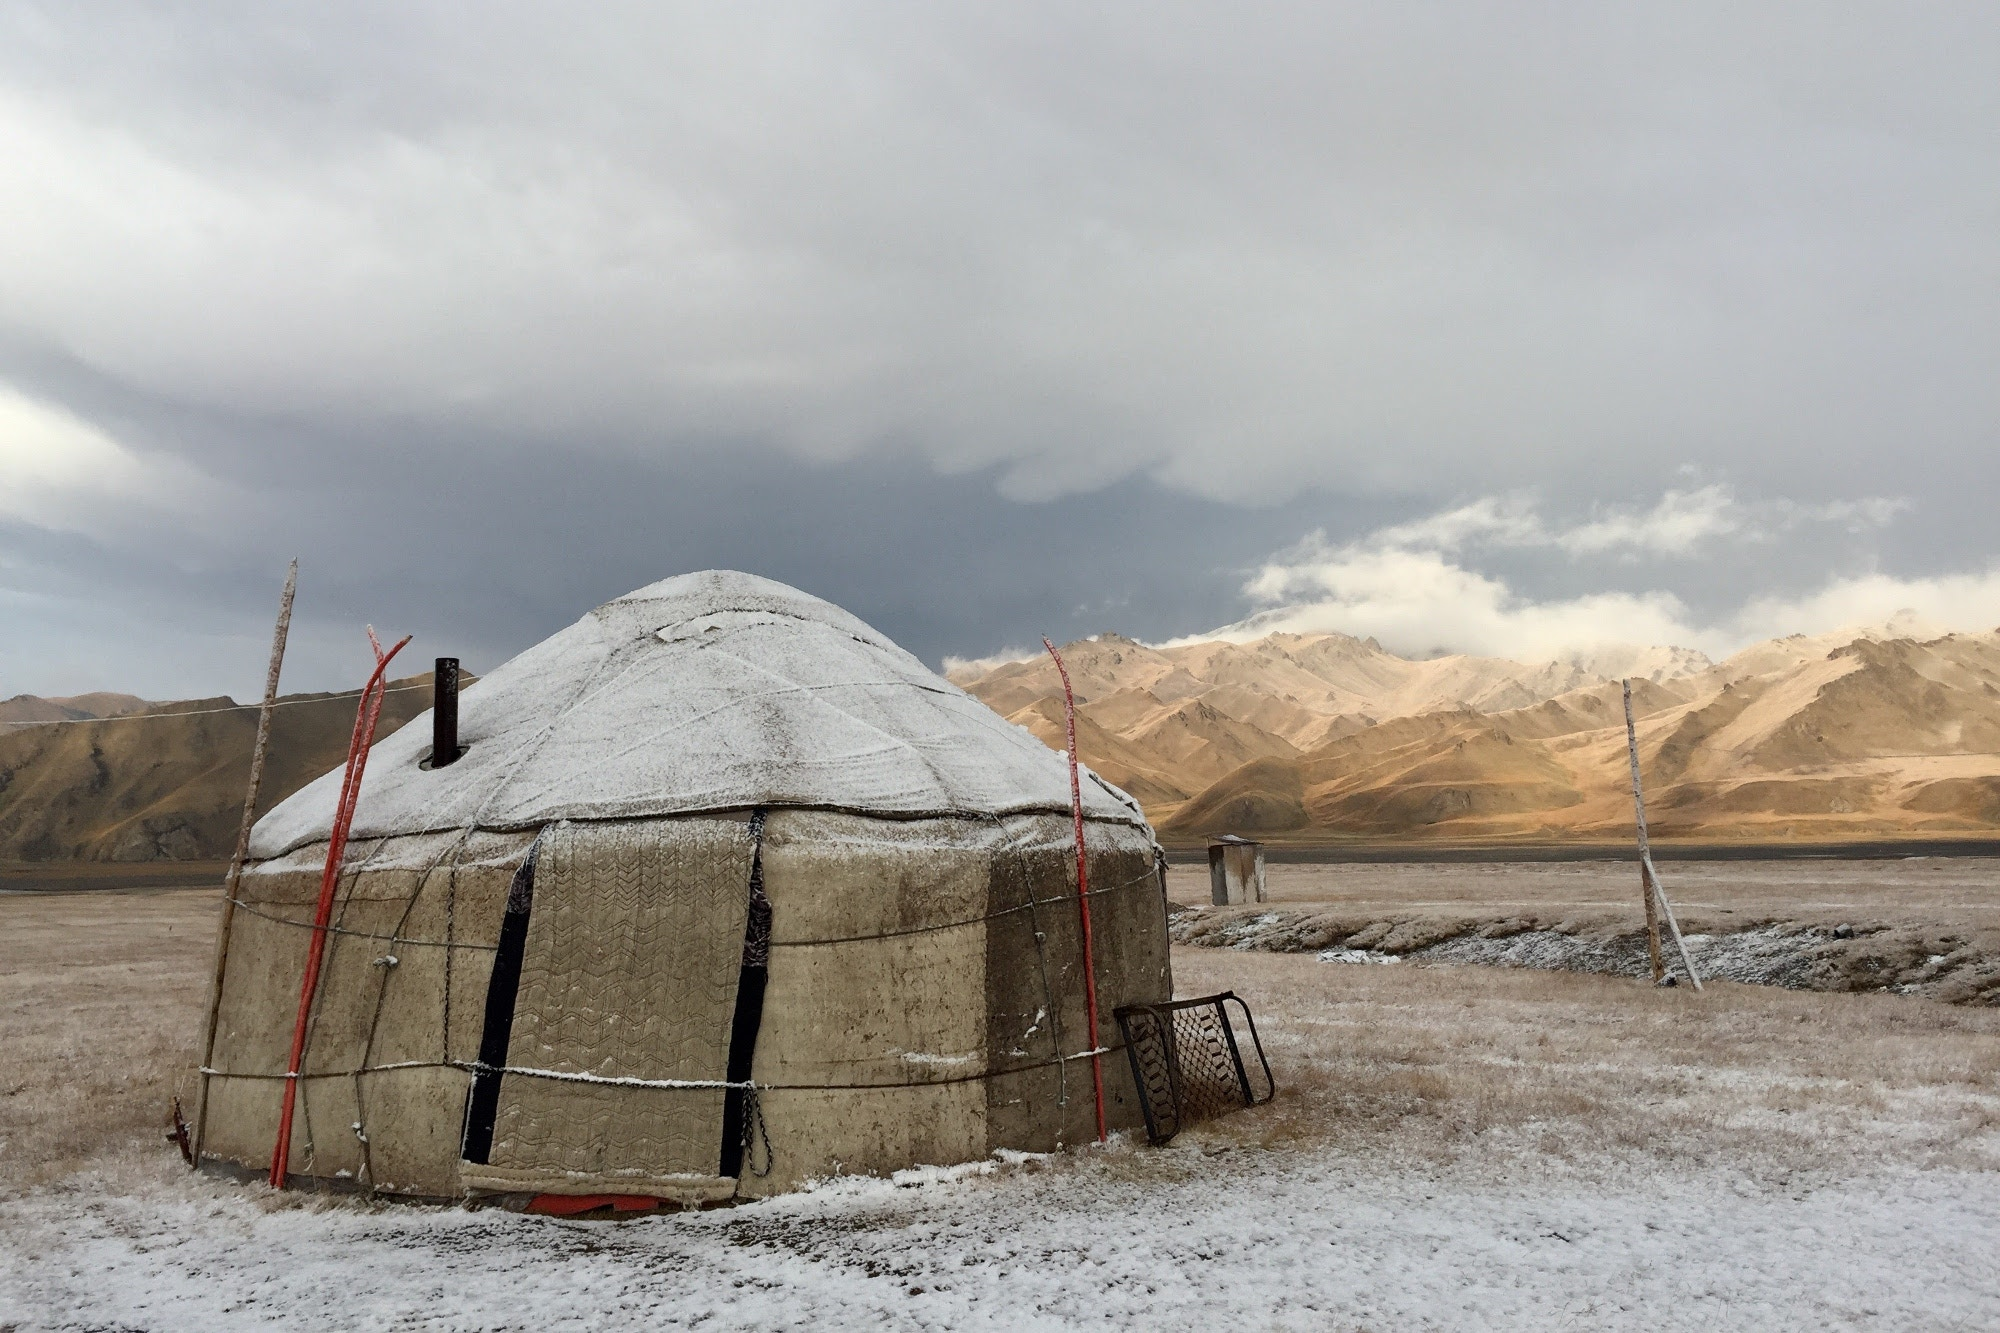 A yurt tent in the middle of the Kyrgyz wilderness